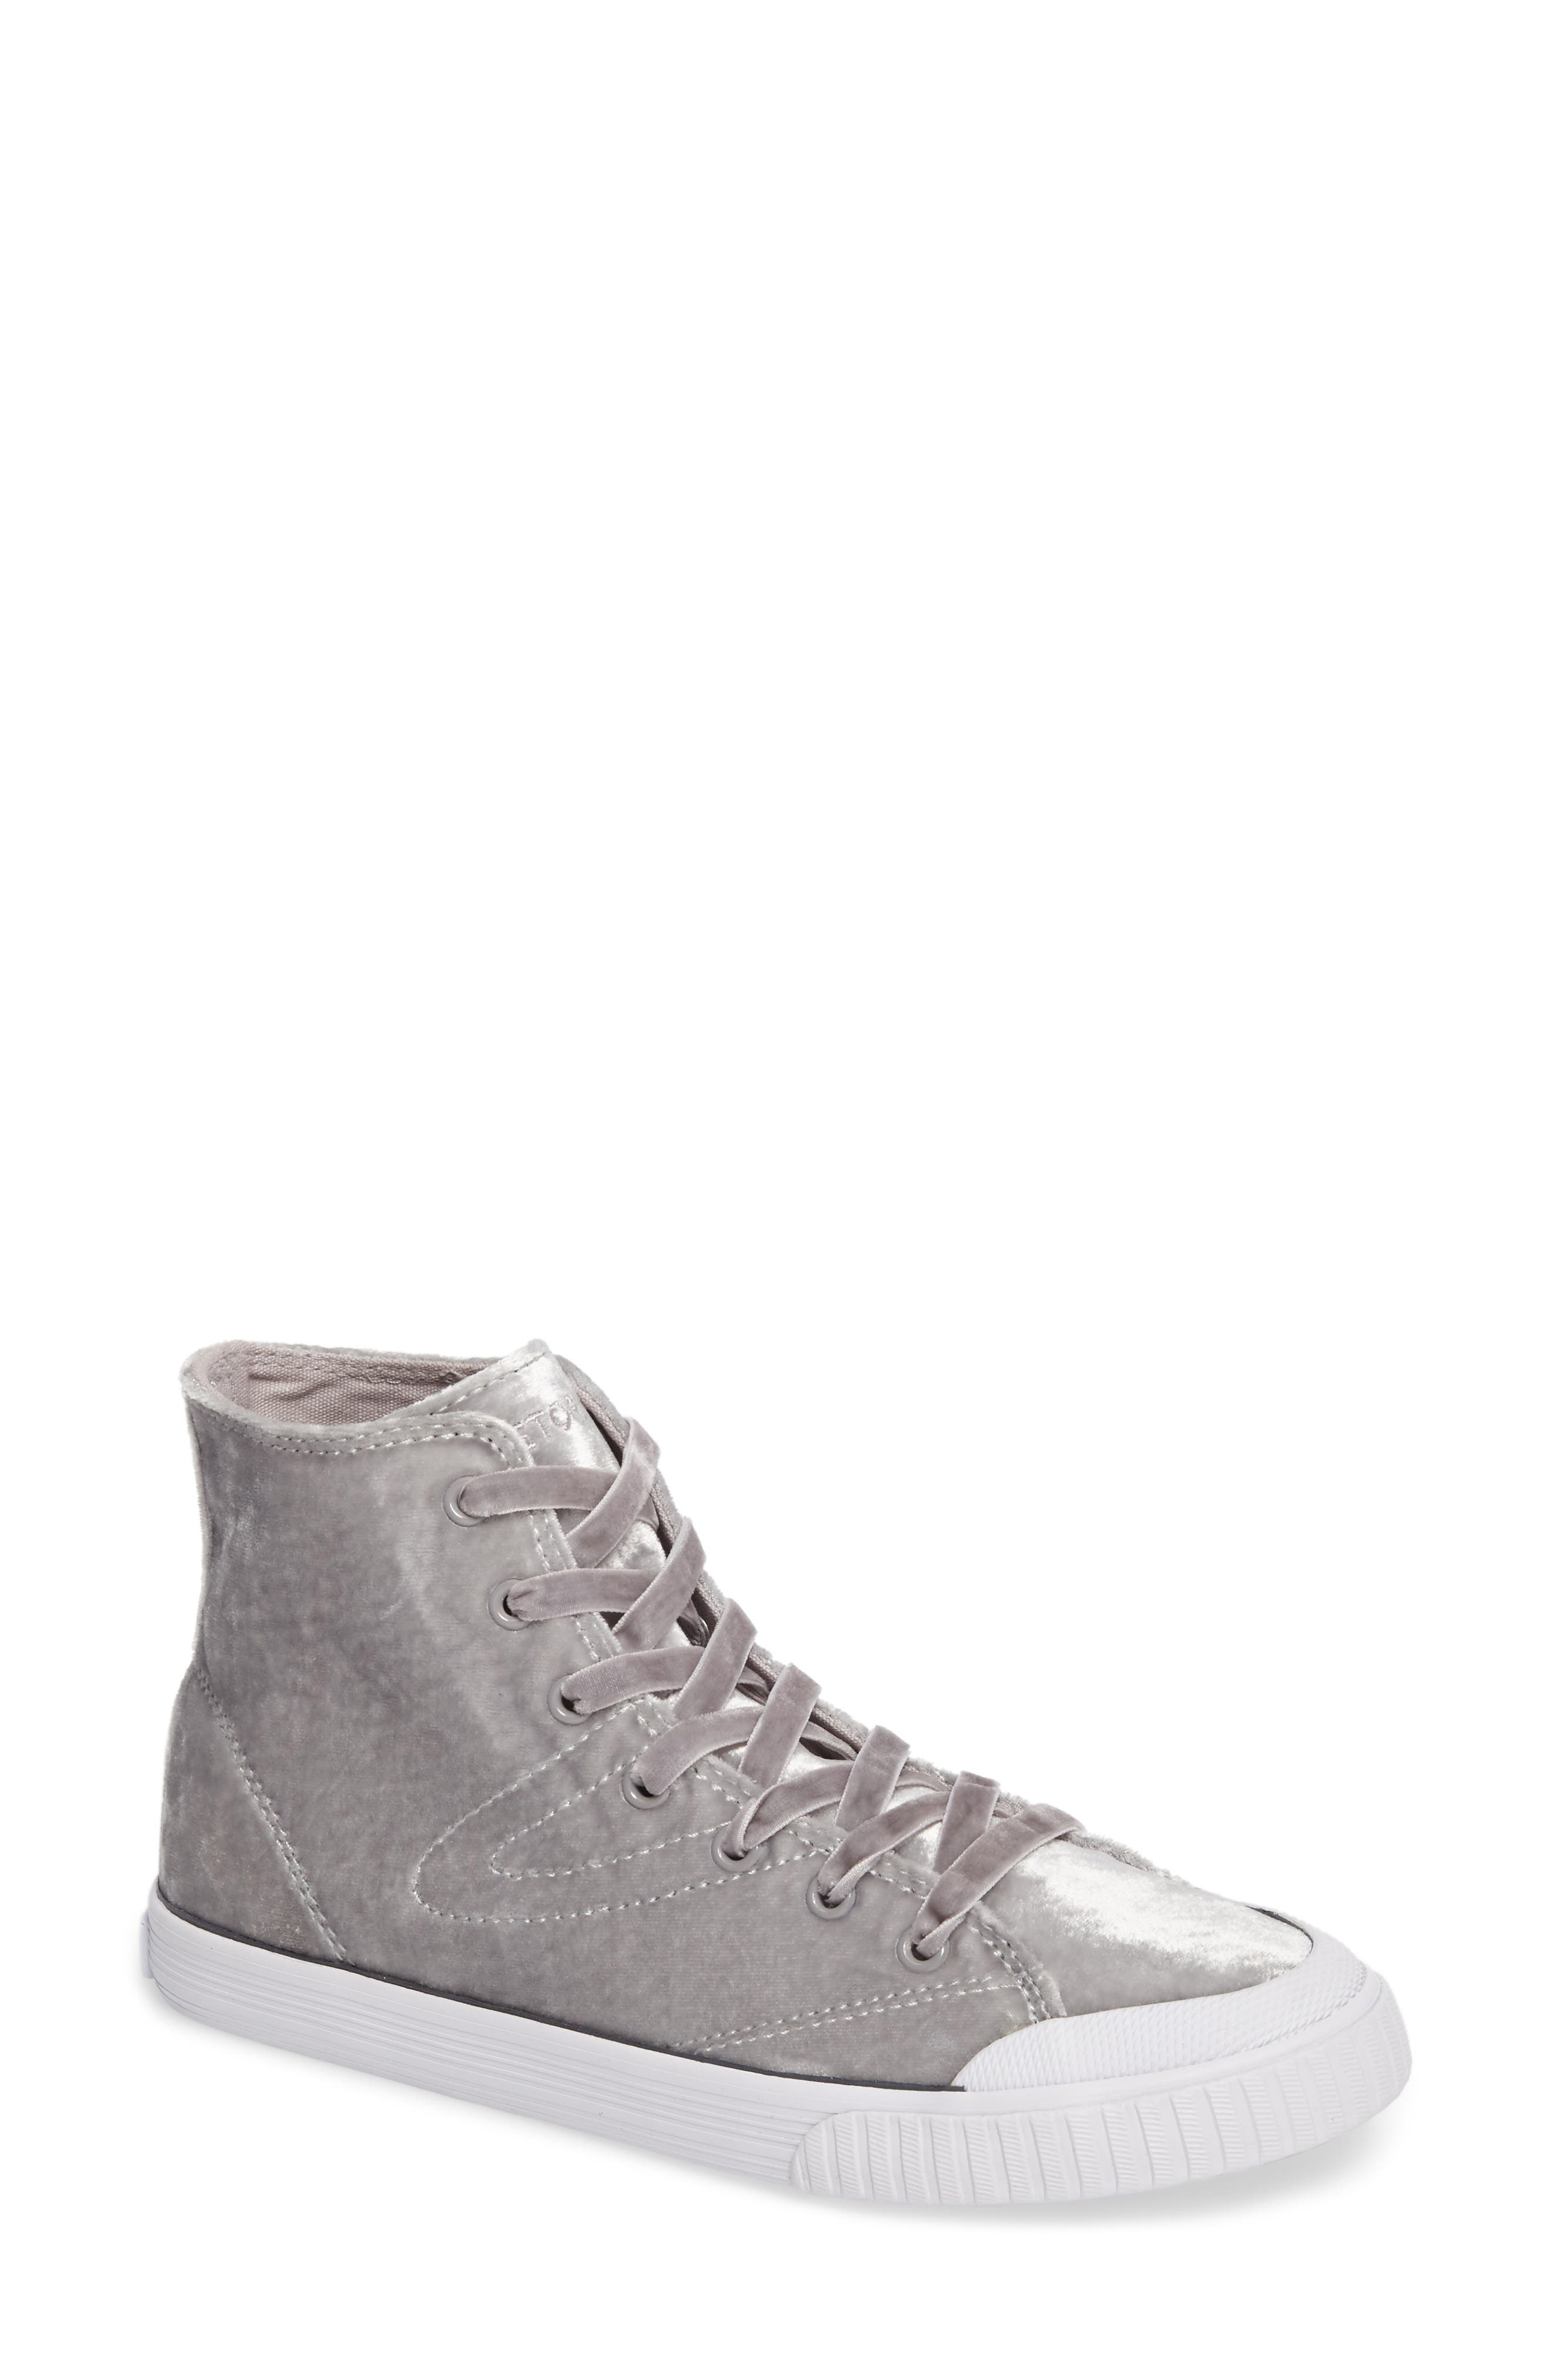 Tretorn Marley 2 High Top Sneaker (Women)